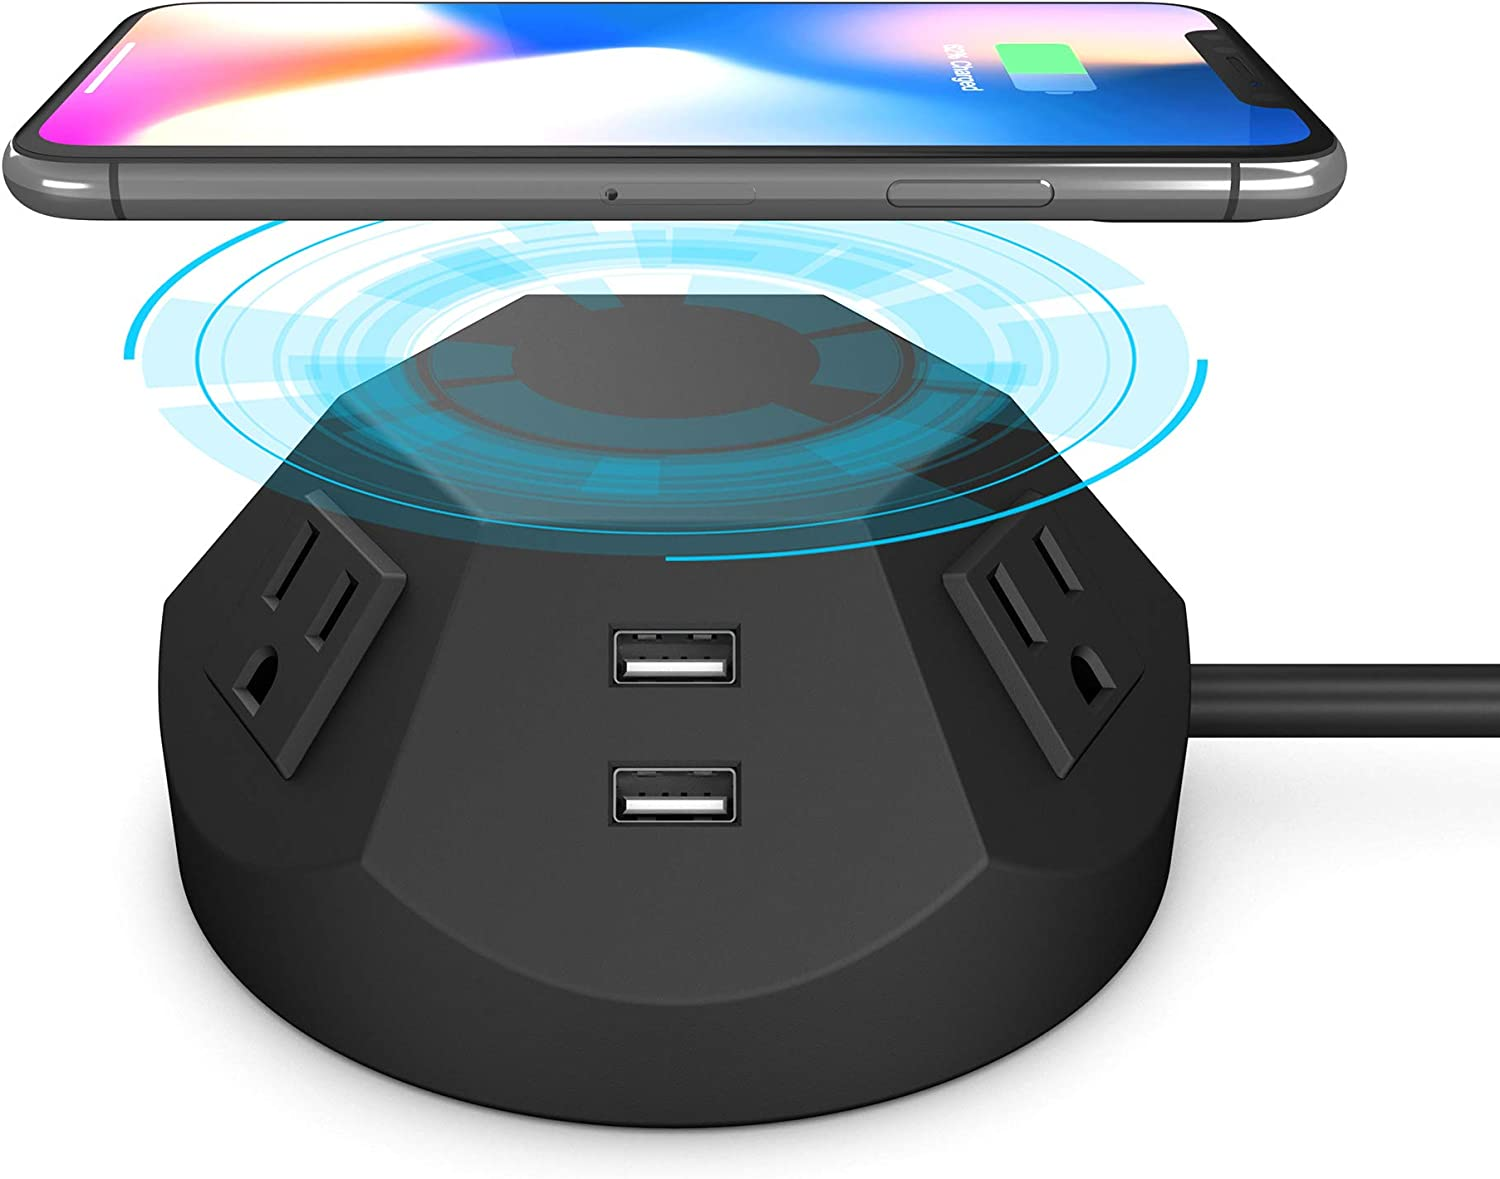 BTU 9 in 1 Wireless Charging Surge Protector Power Strip Tower with 4 AC Outlet Plugs and 4 USB Charging Dock Station, 6.56 FT Extension Cord Universal Socket PC Laptops Phone